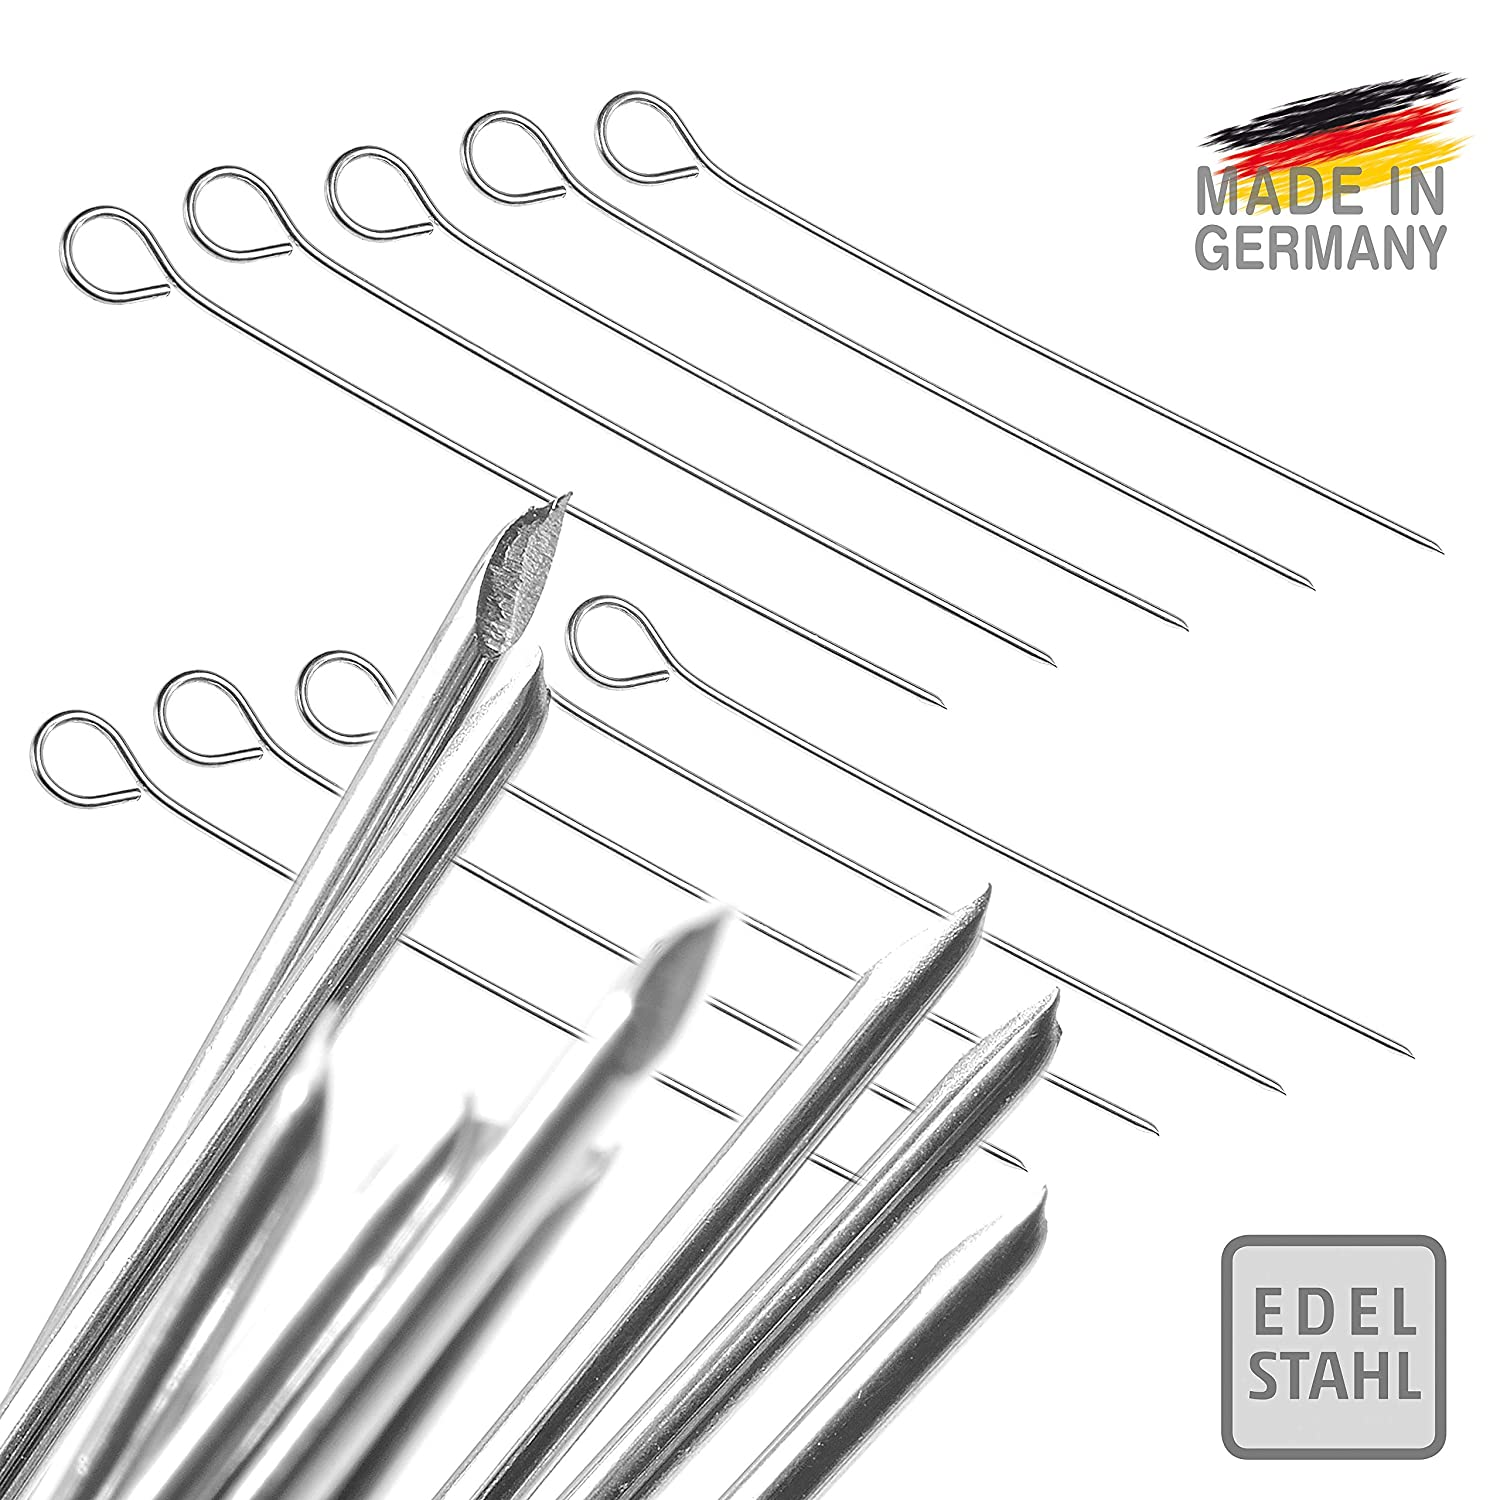 Roulade Needles Stainless Steel//Barbecue skewers Cocktail Sticks Made in Germany 10 pcs.